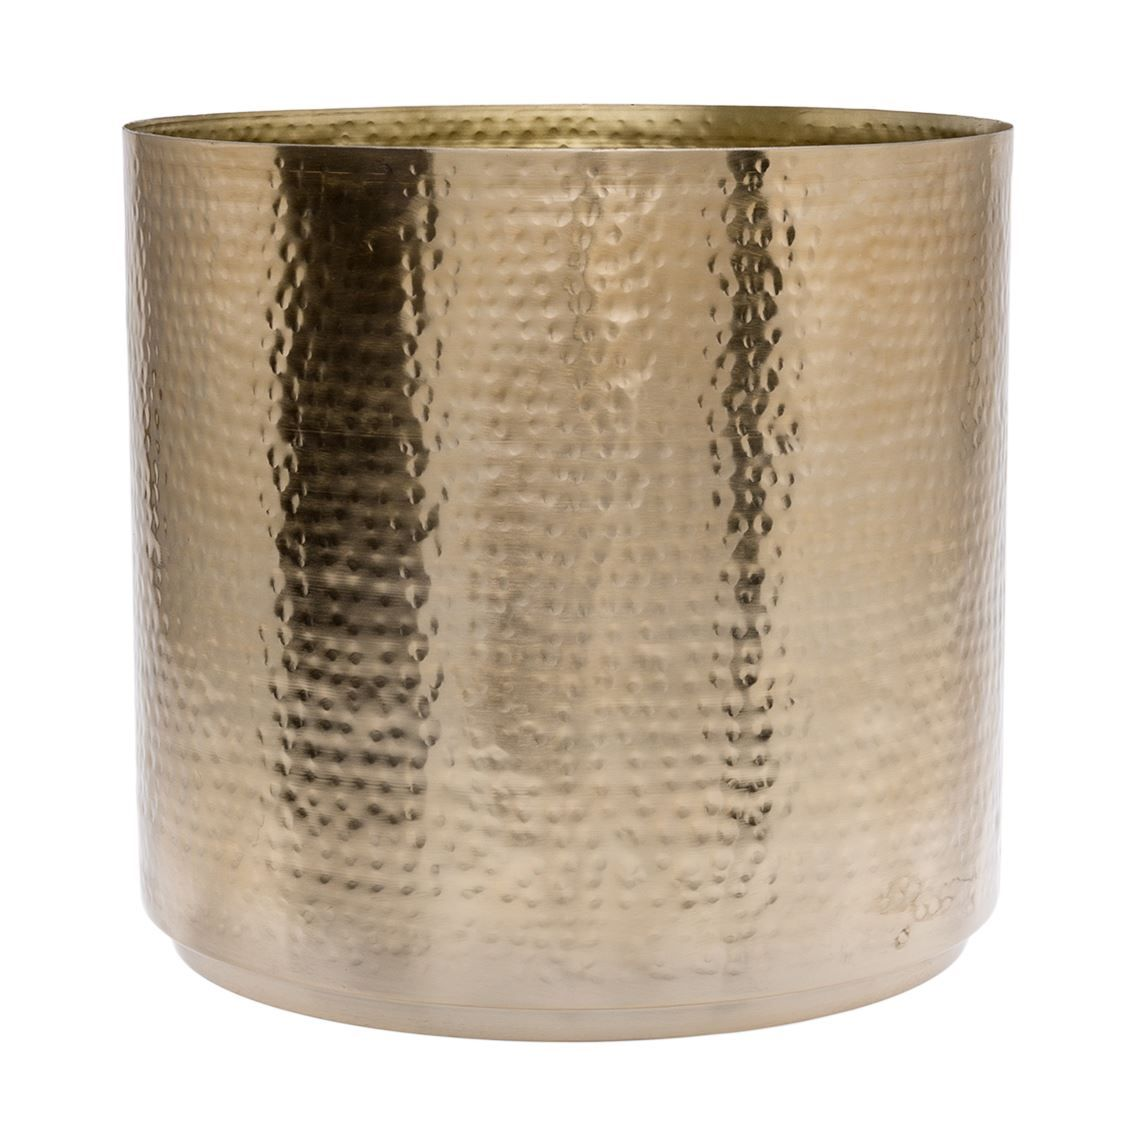 Hammered 28cm Planter Brass Colour Brass Color Brass Brass Pot